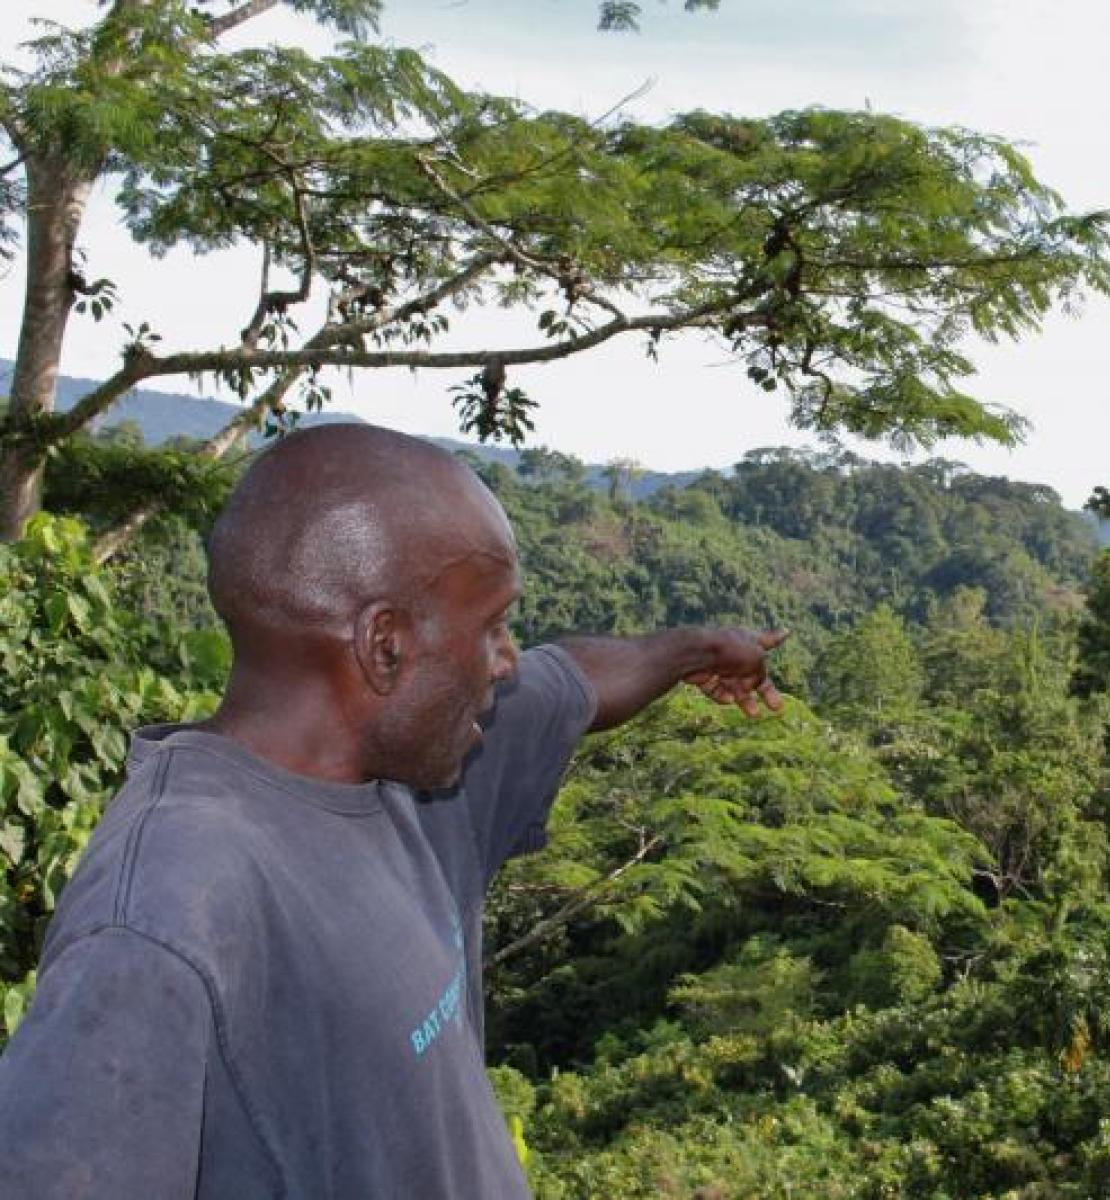 Man stands at the forefront of a lush green valley of trees and hills. He's shown pointing behind him towards some green mountains.